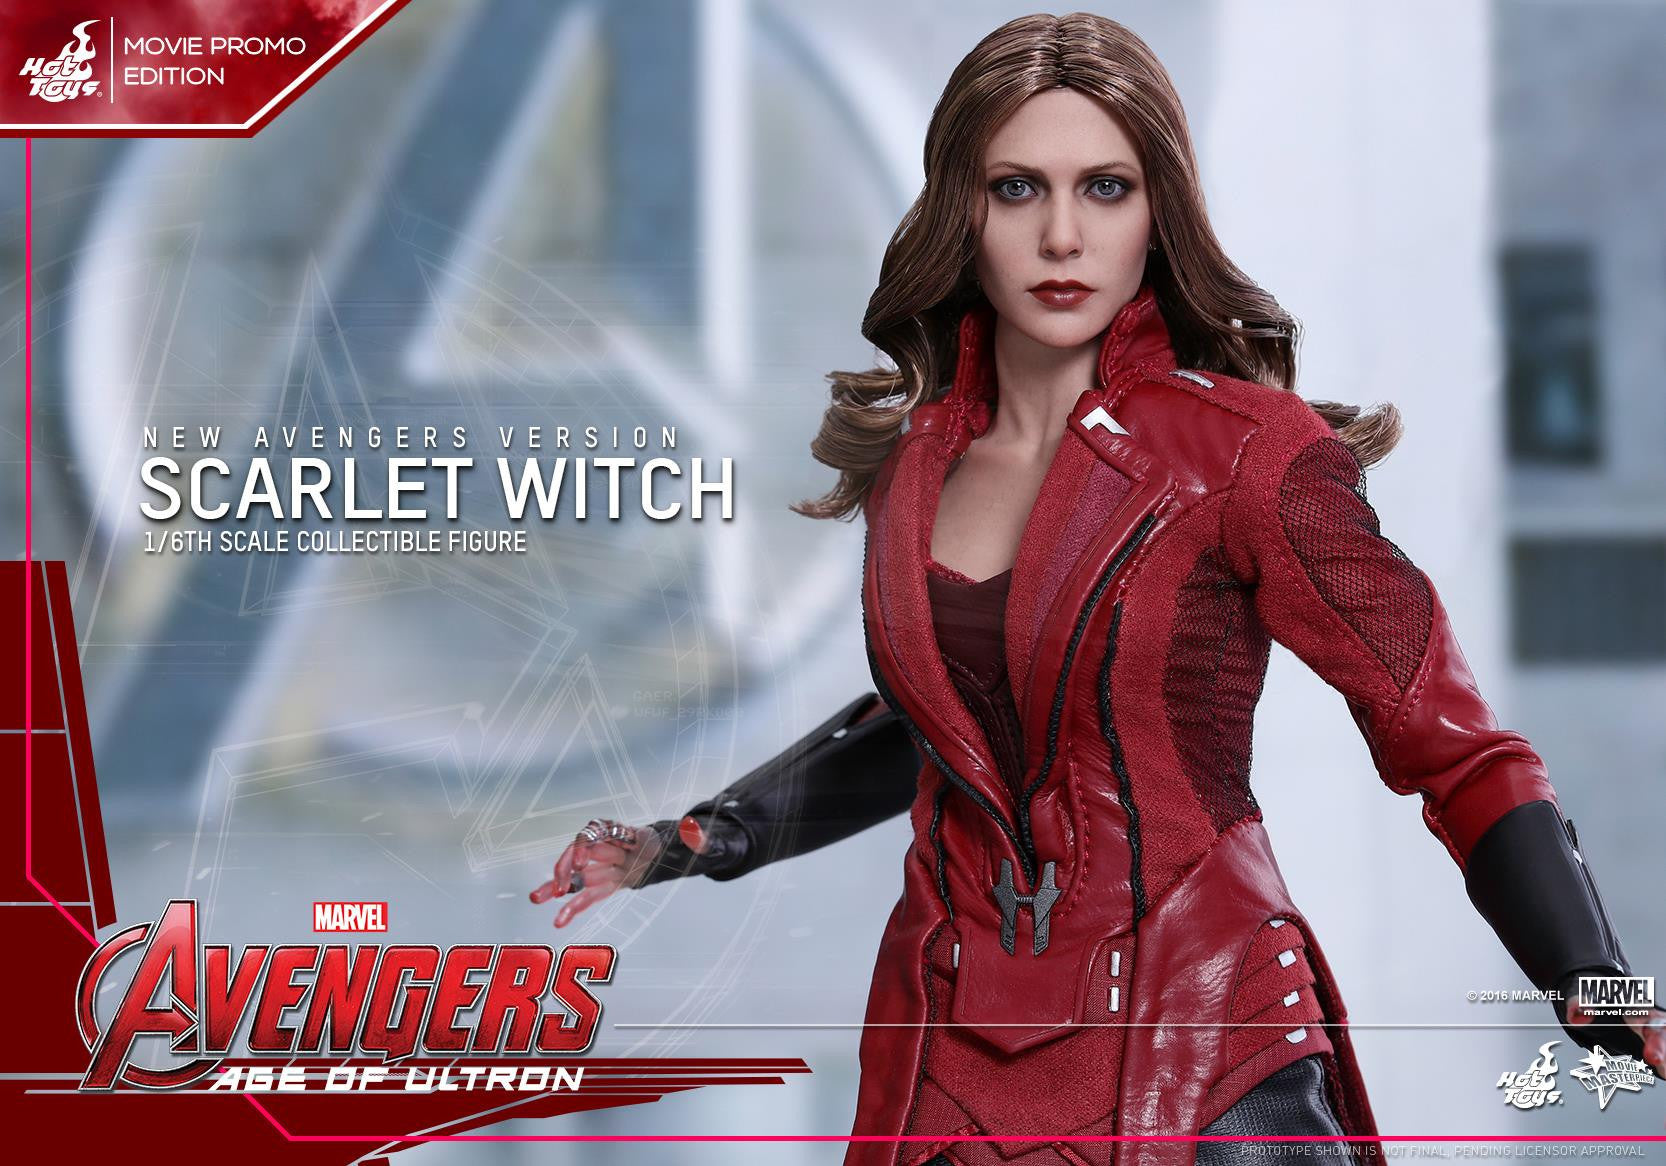 Toys - Avengers: Age of Ultron - Scarlet Witch (New Avengers Version) Movie Promo MMS357 - Marvelous Toys - 3